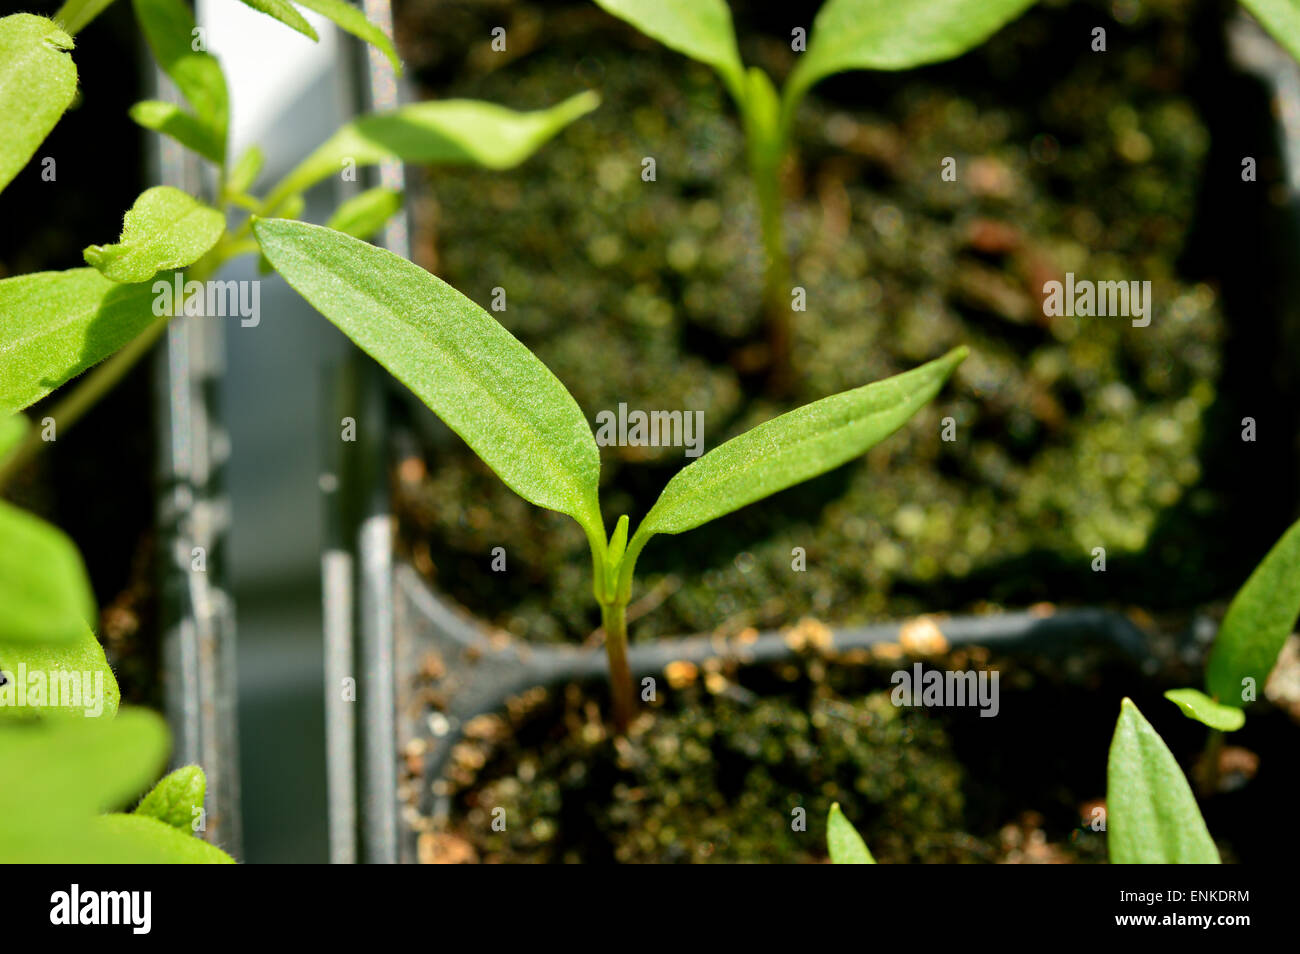 close-up of paprika seedling, young plant in plastic pot, gardening. Selective focus. - Stock Image